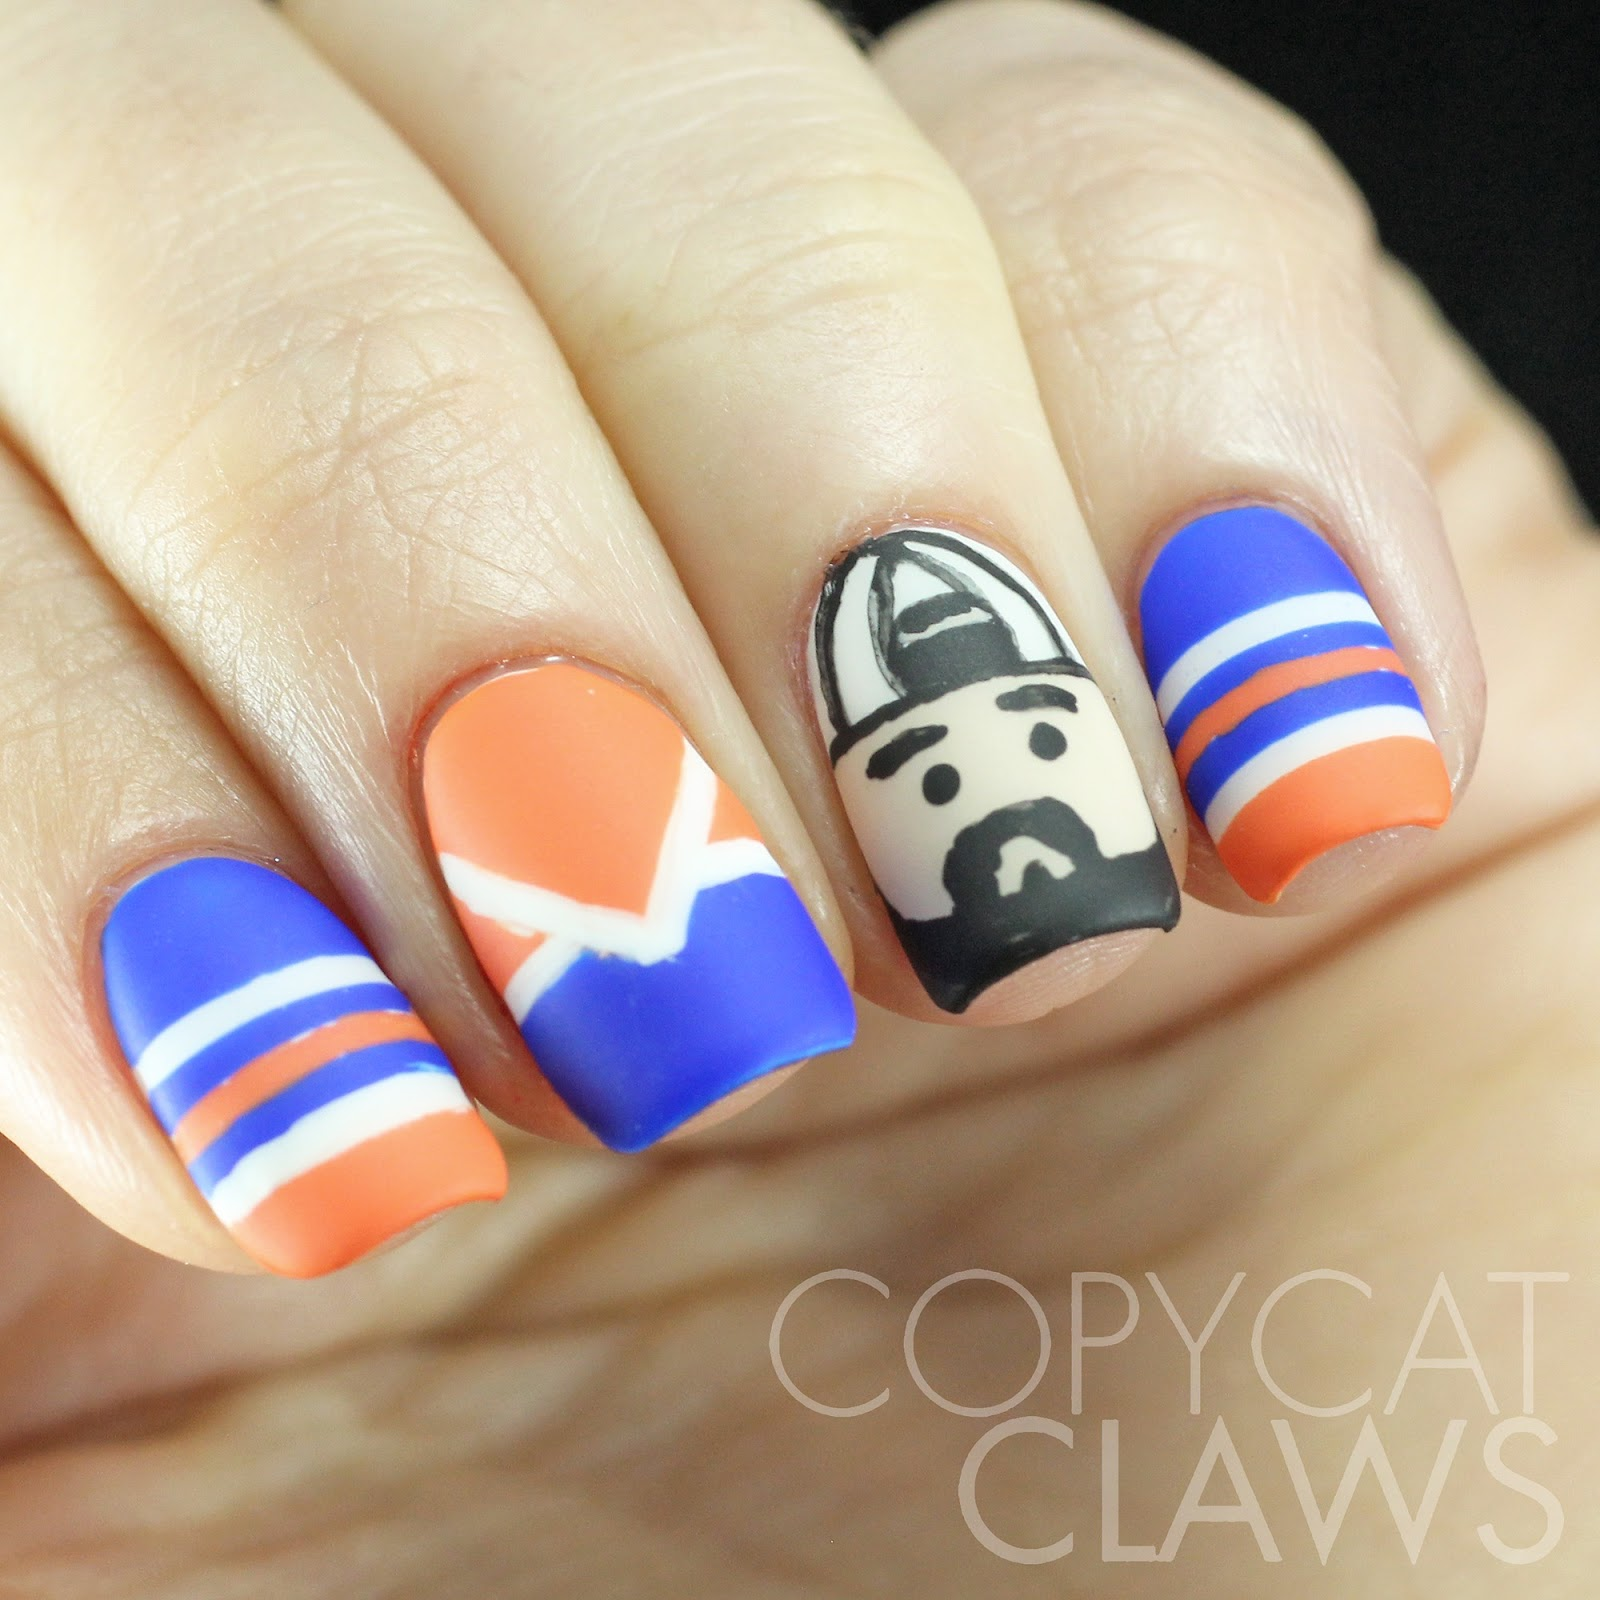 Copycat Claws Blue Color Block Nail Art: Copycat Claws: The Digit-al Dozen Does Fandom: Day 1 Kevin